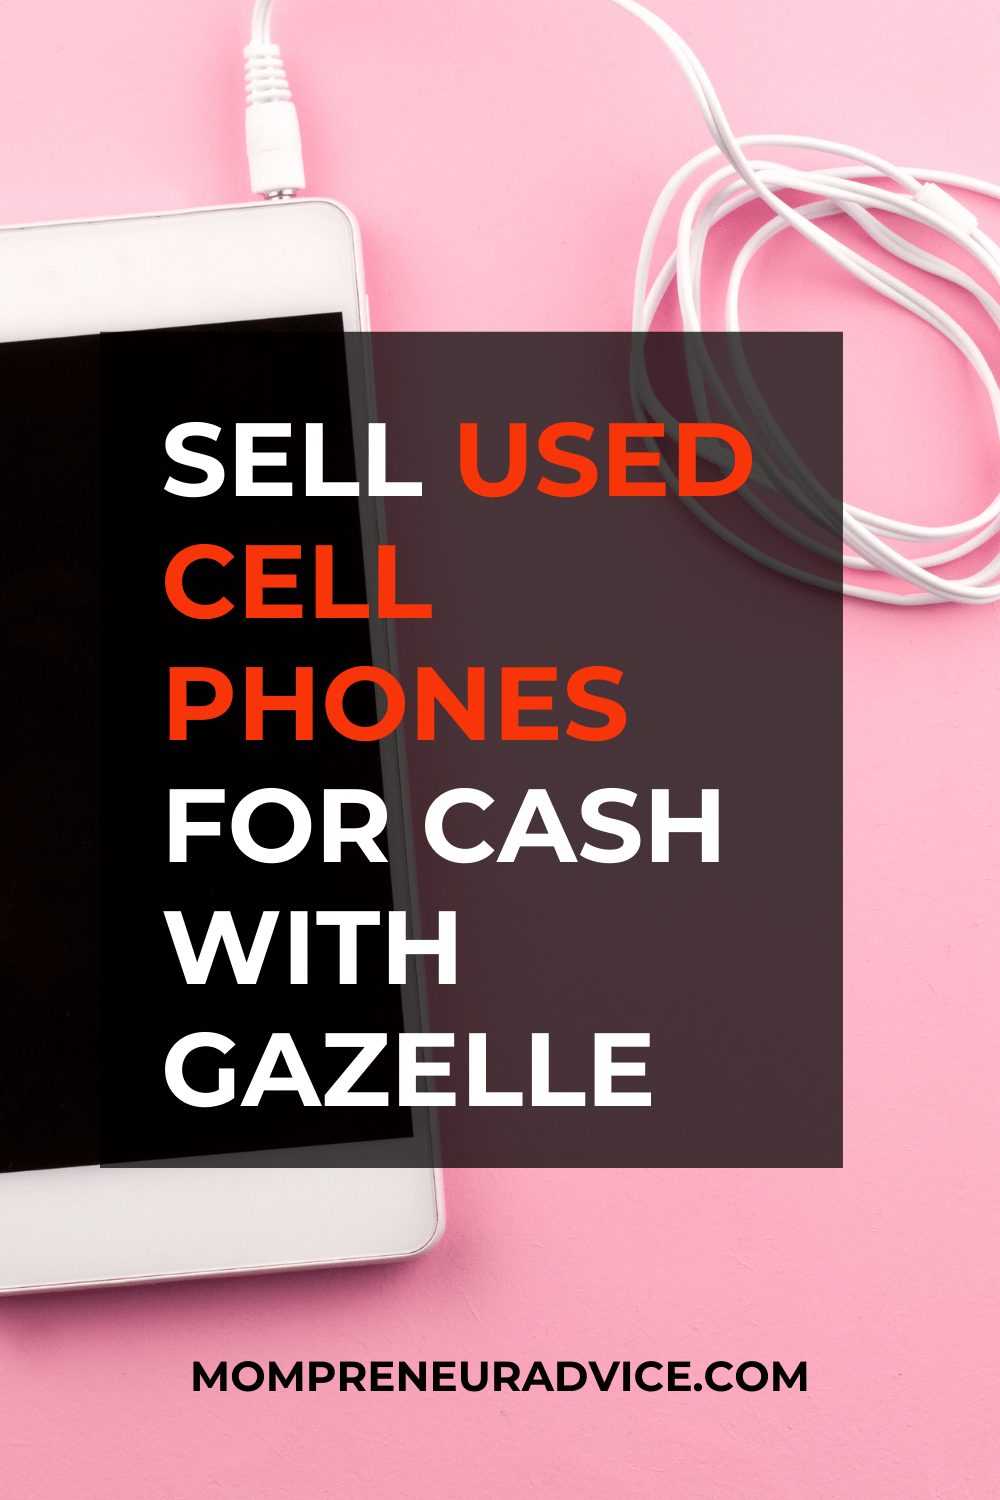 Sell used cell phones for cash with Gazelle - mompreneuradvice.com